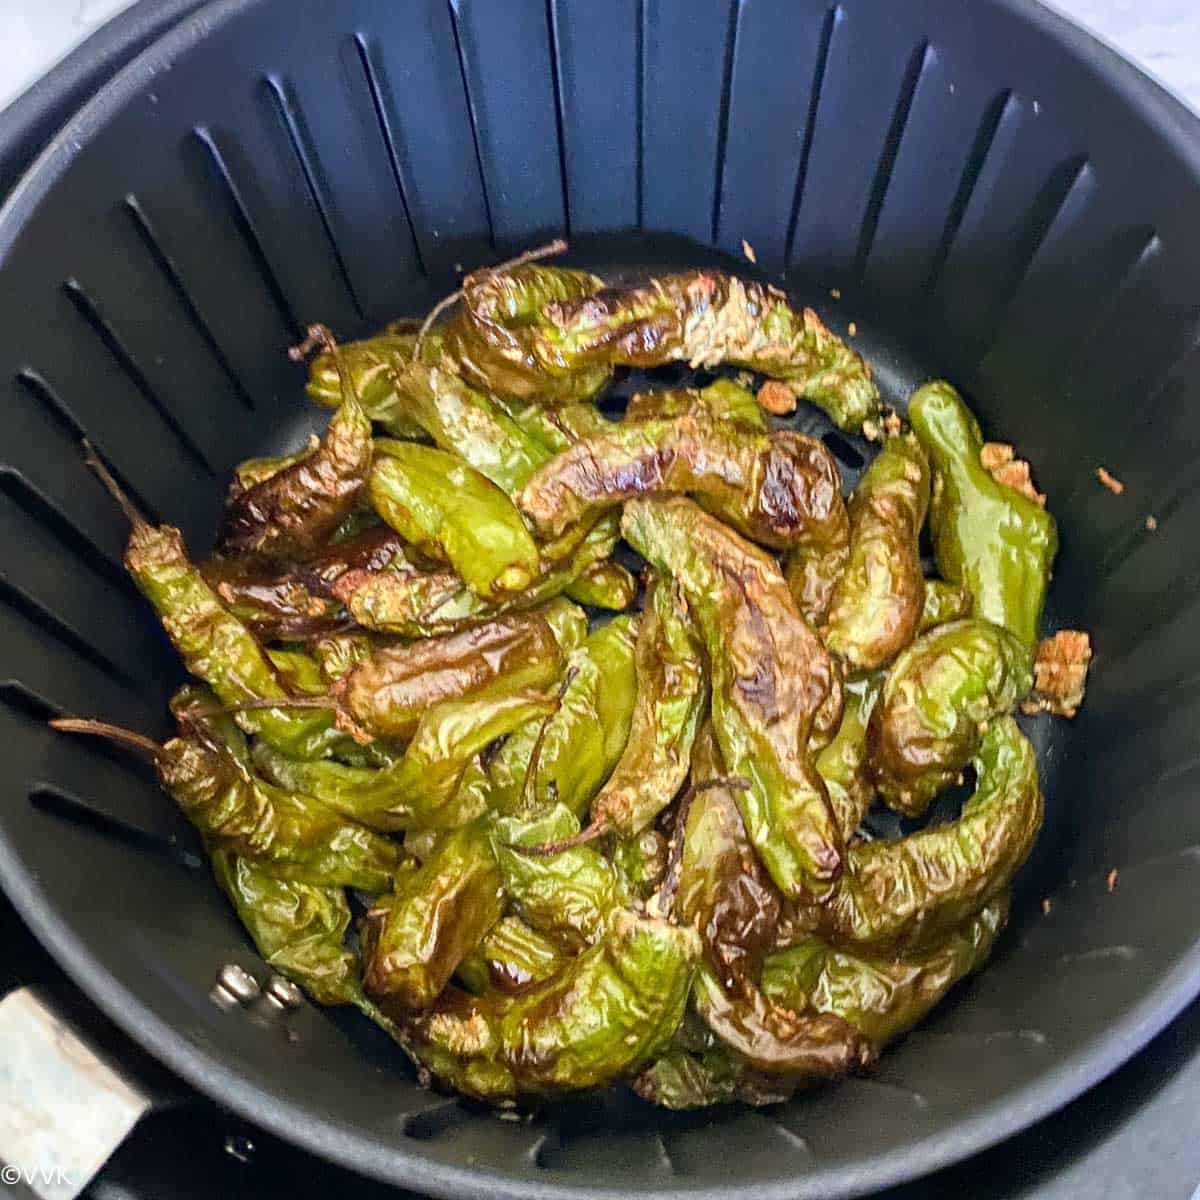 blistered and charred shishito peppers in the air fryer